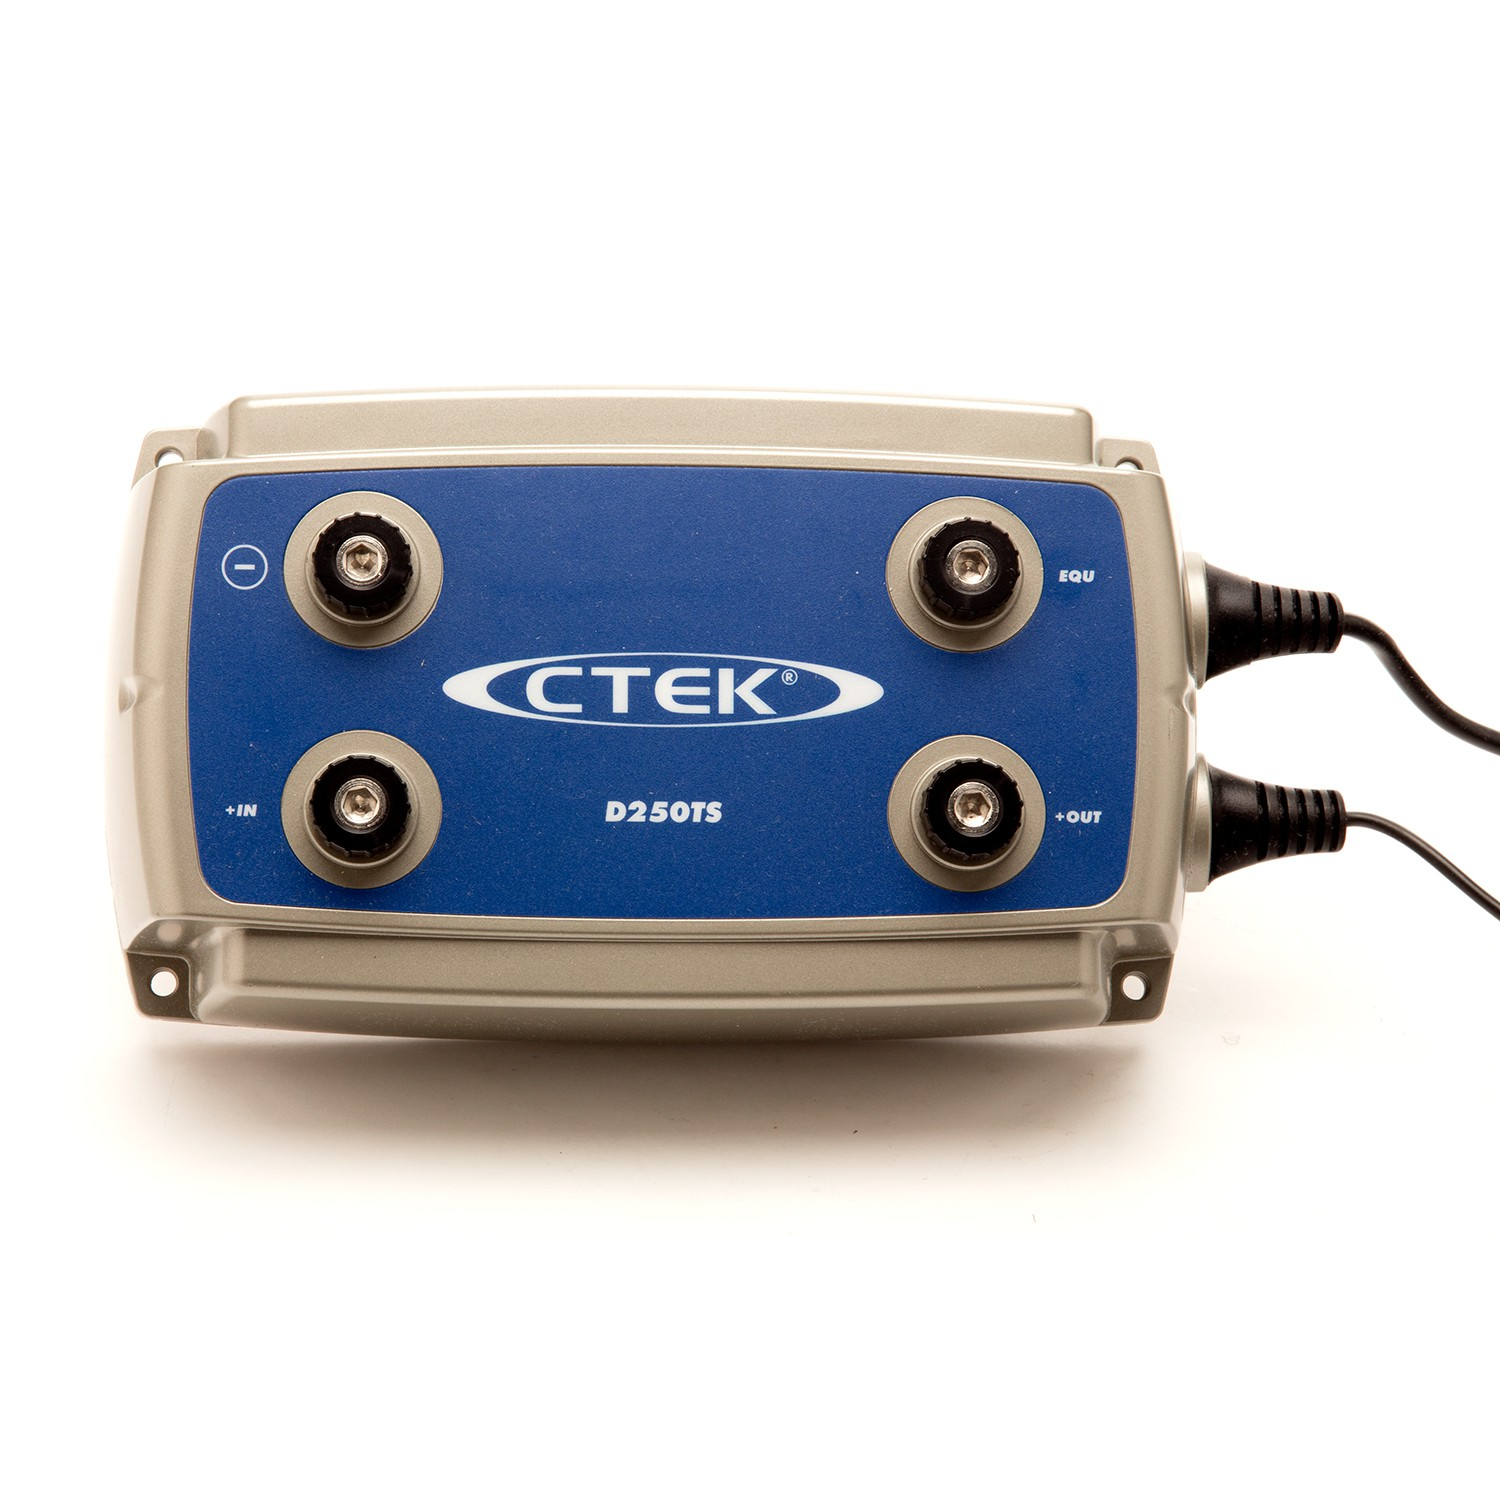 Front View, CTEK - D250TS Dual Battery Charger, 24V- 10a, Part Number: 56-740